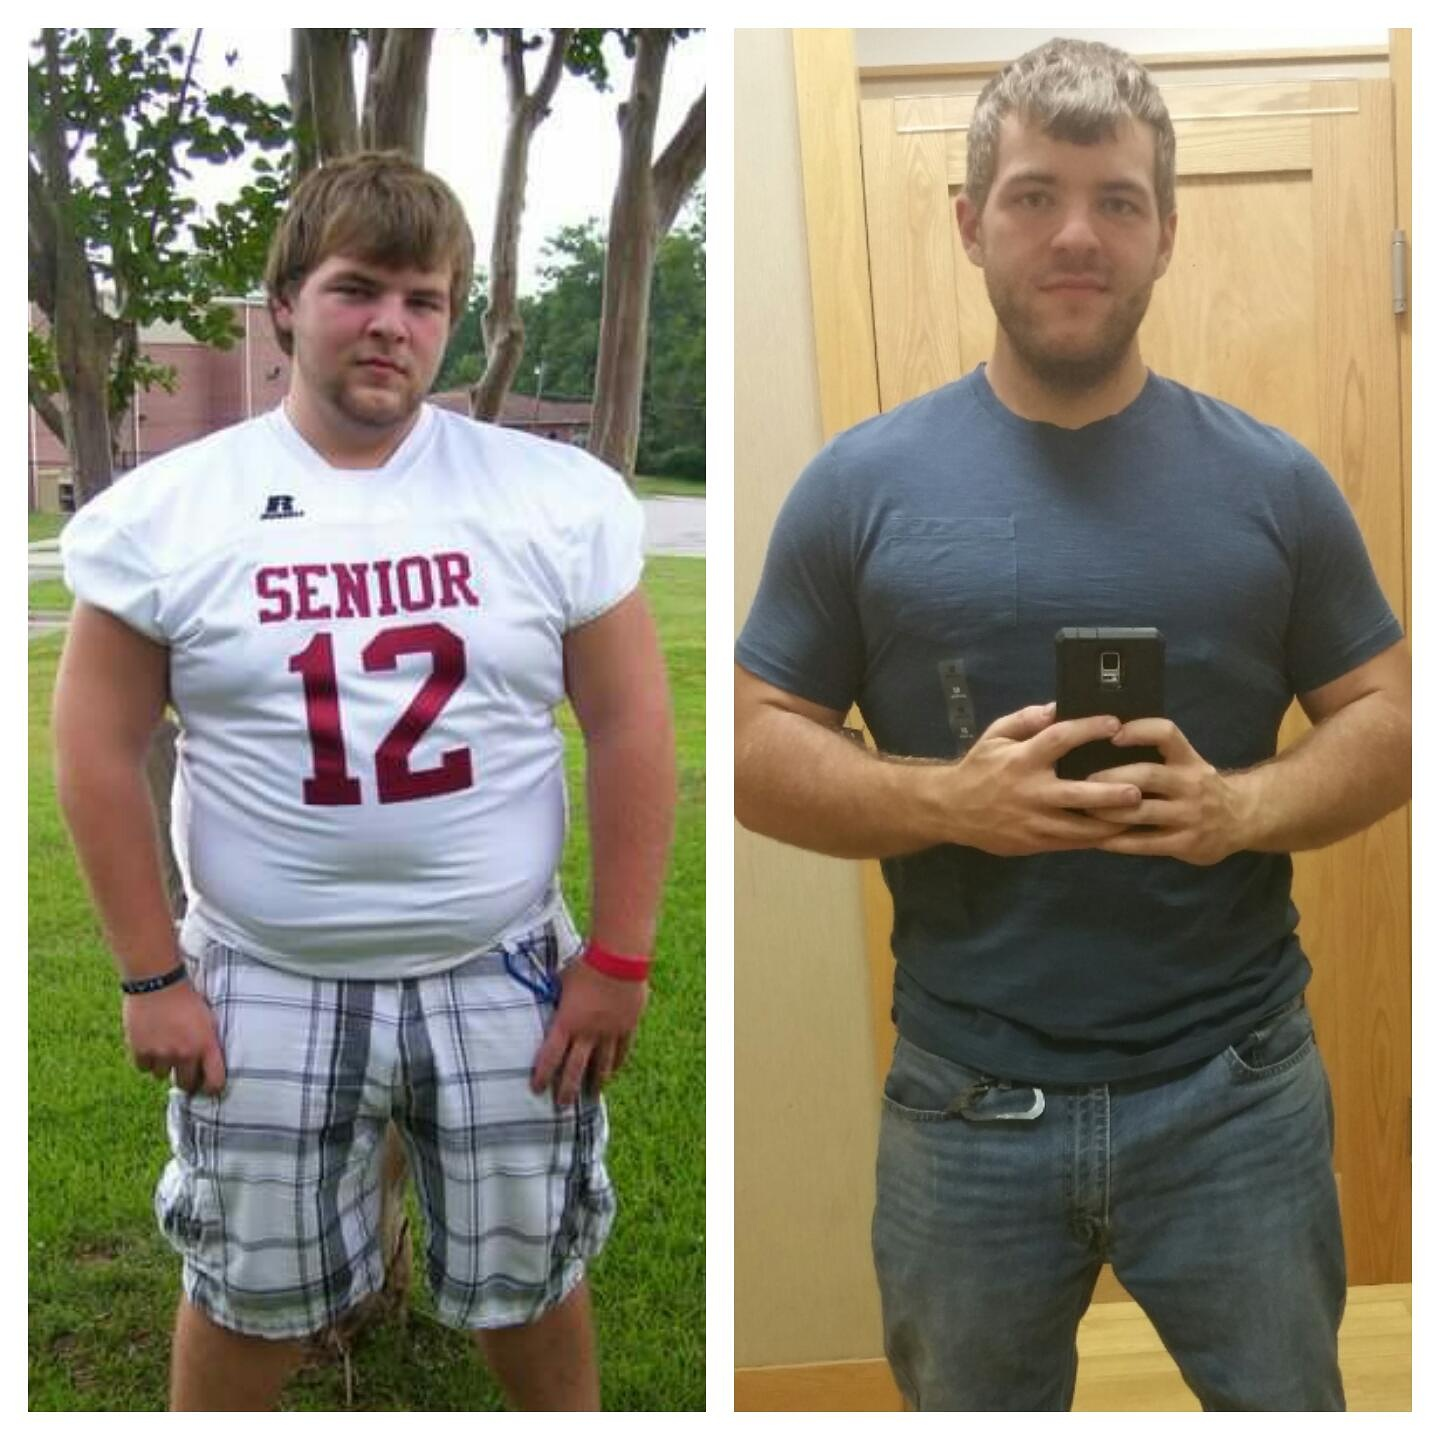 Great success story! Read before and after fitness transformation stories from women and men who hit weight loss goals and got THAT BODY with training and meal prep. Find inspiration, motivation, and workout tips | 115 Pounds Lost: Never Stop Learning